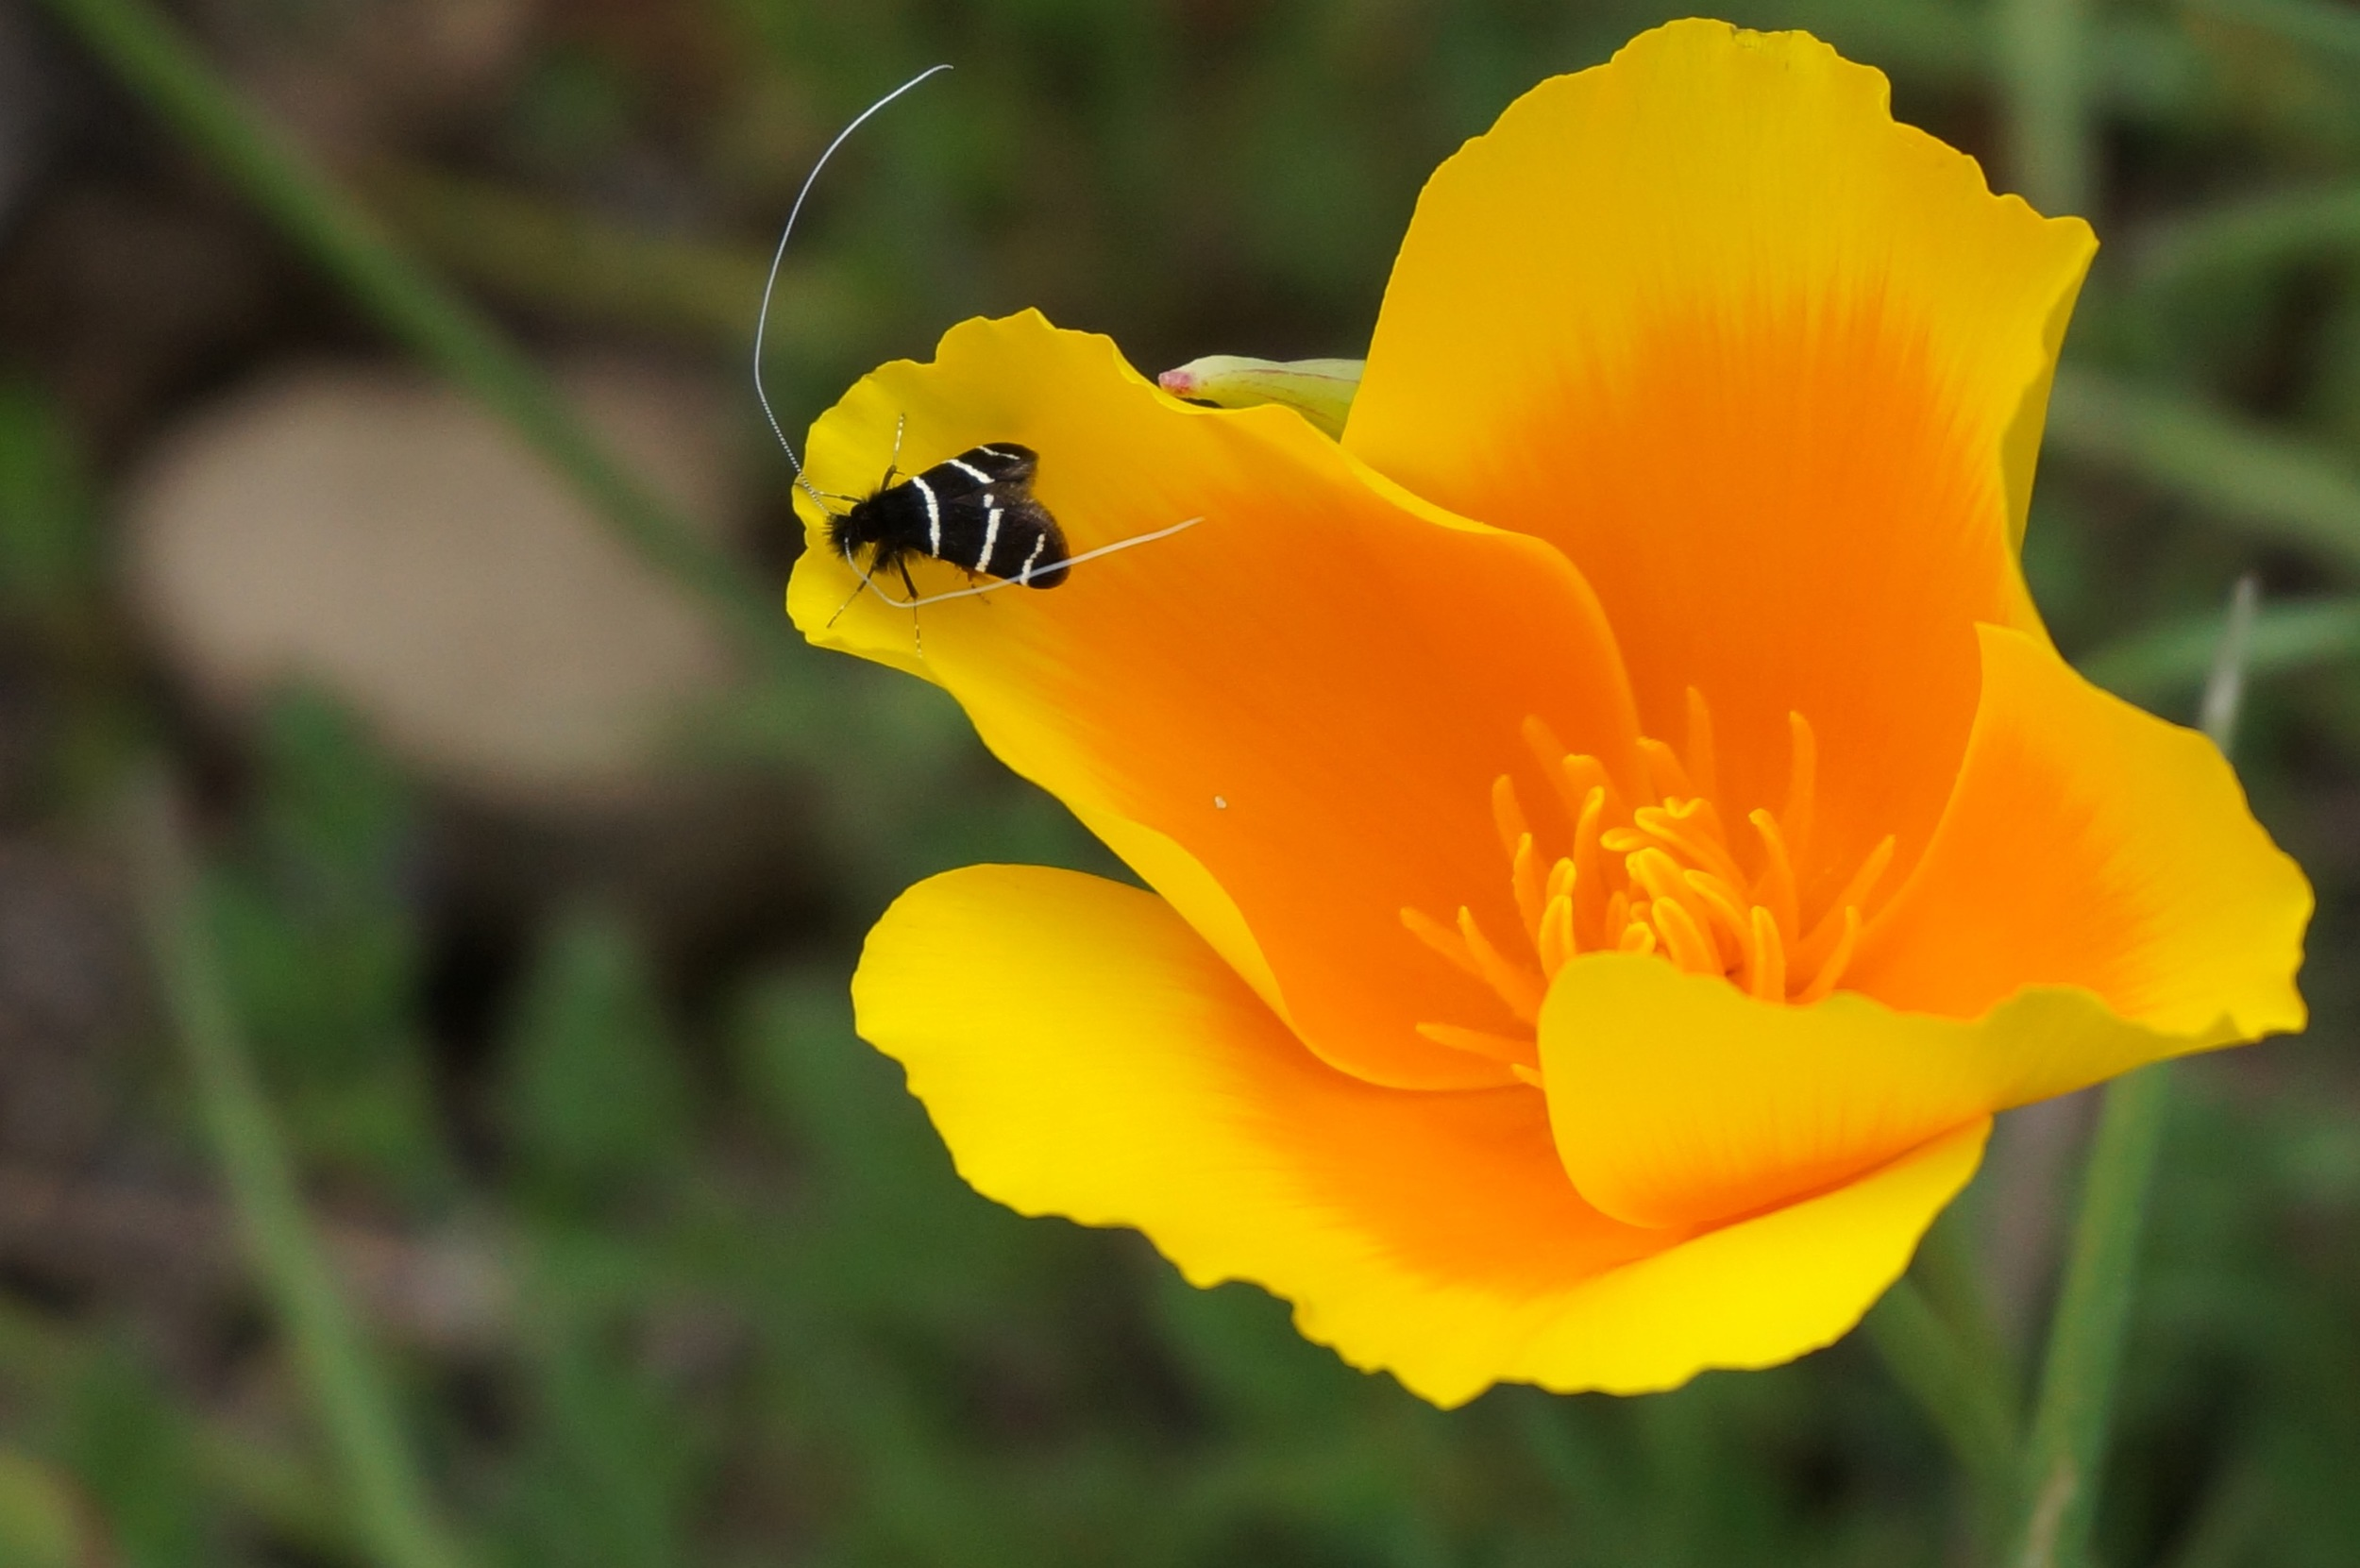 This species of bug hangs out on california Poppies in the spring. I'm pretty sure the black and white bands mean DO NOT F*** WITH ME! The antennae wave wildly in the slightest breeze. I had some amazing macro video footage of these, but it was all lost.